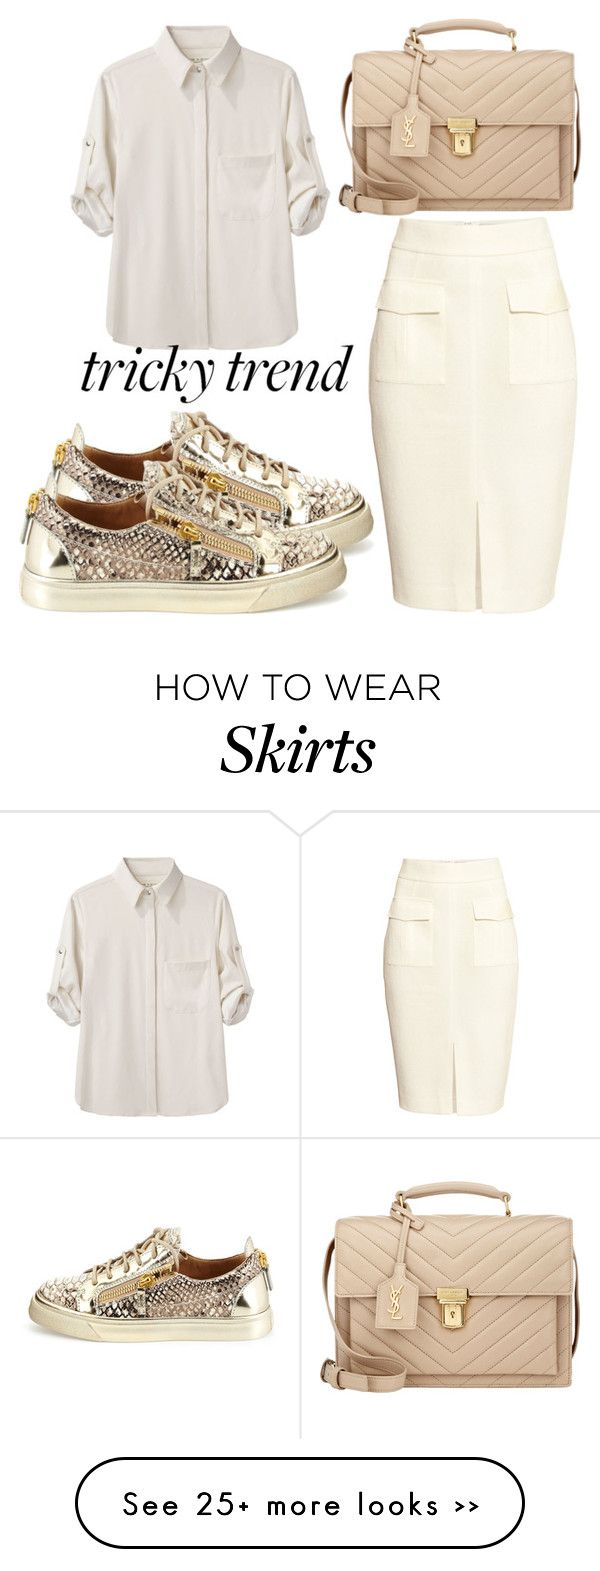 """Tricky Trend: Pencil Skirts and Sneakers"" by fiirework on Polyvore featuring moda, H&M, rag & bone, Giuseppe Zanotti y Yves Saint Laurent"